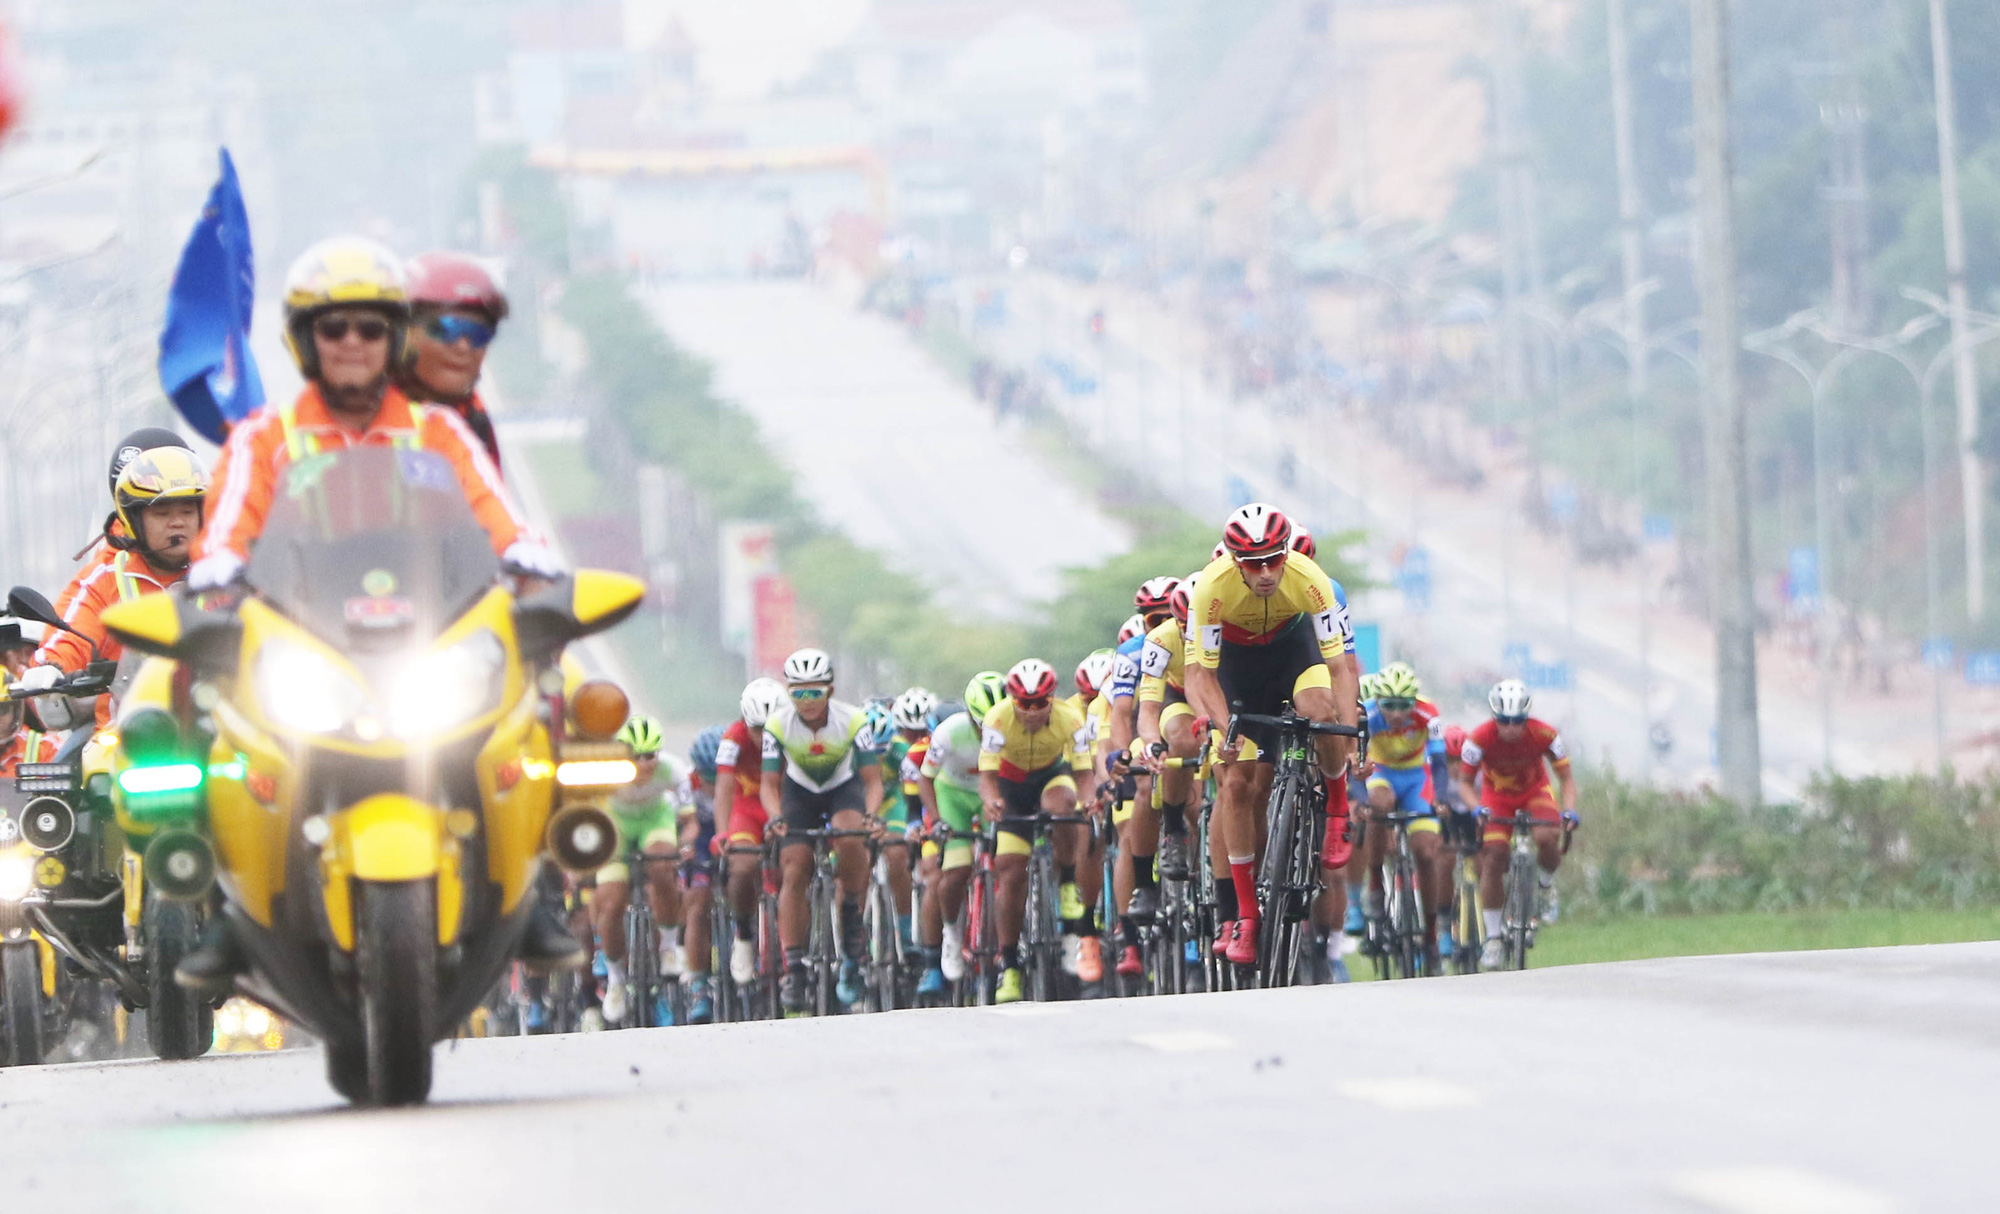 Cyclists race in the opening stage at the HTV Cup national cycling tournament in Cao Bang Province, Vietnam, April 6, 2021. Photo: T.P. / Tuoi Tre